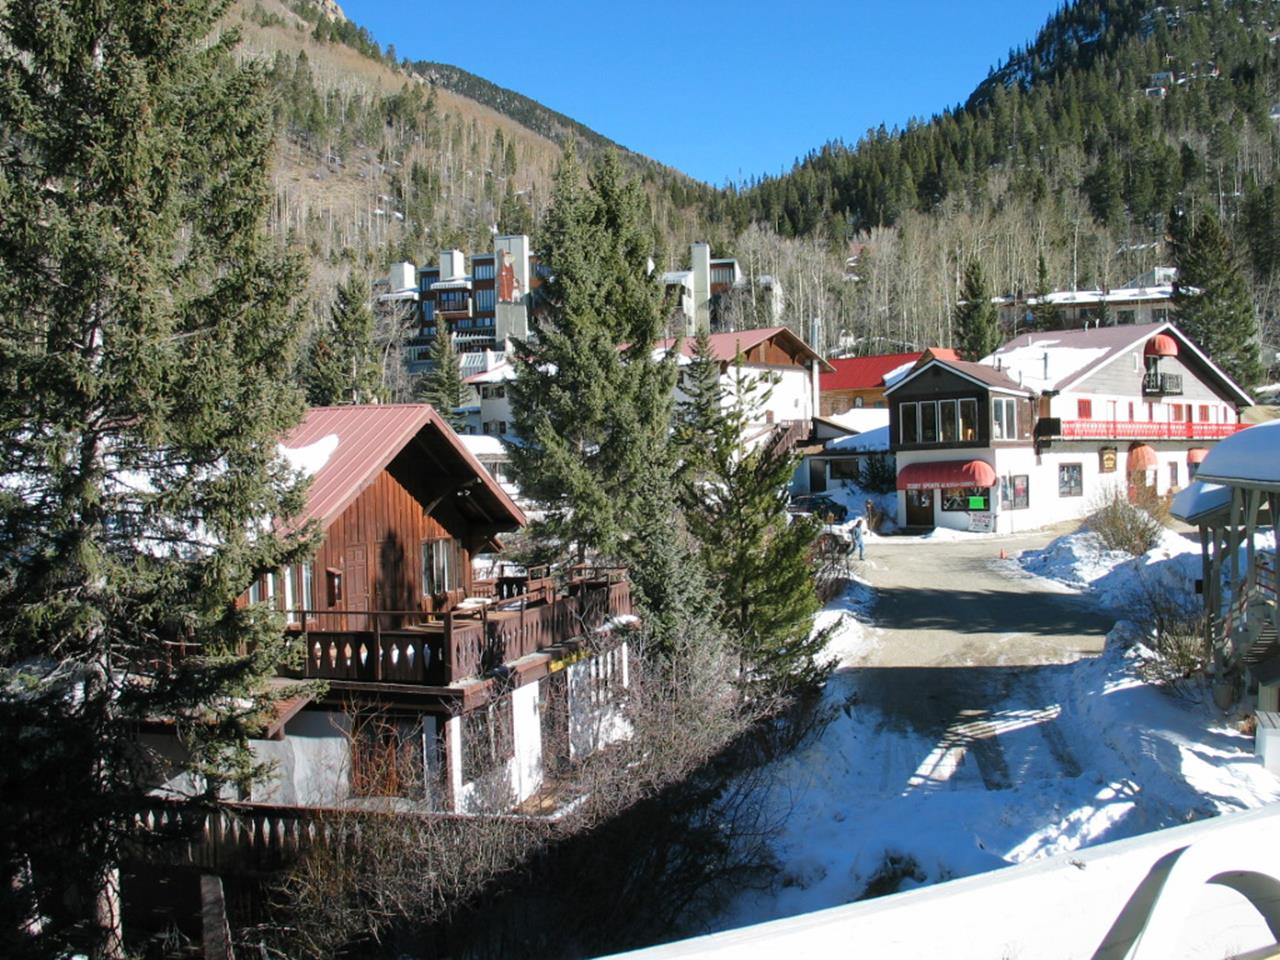 #Taos attractions #Village of Taos Ski Valley #Taos #New Mexico